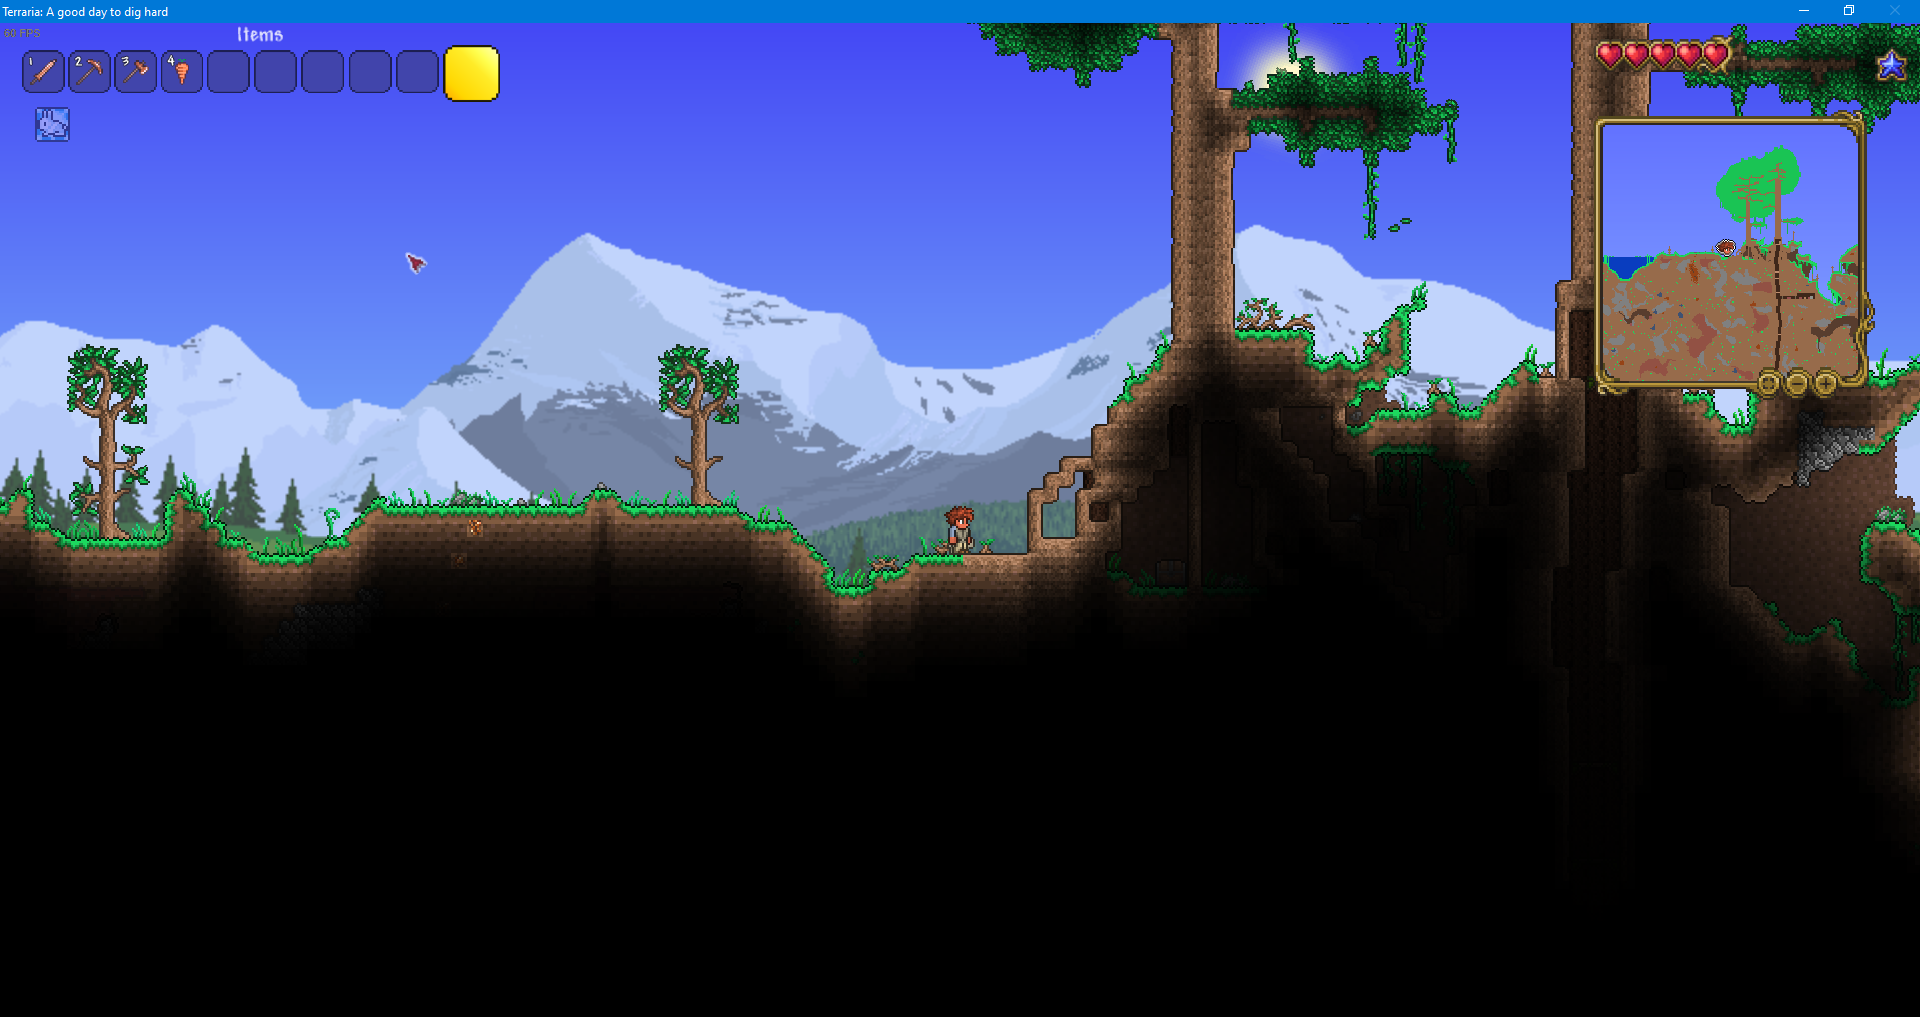 Terraria_ A good day to dig hard 8_14_2020 11_32_09 AM.png